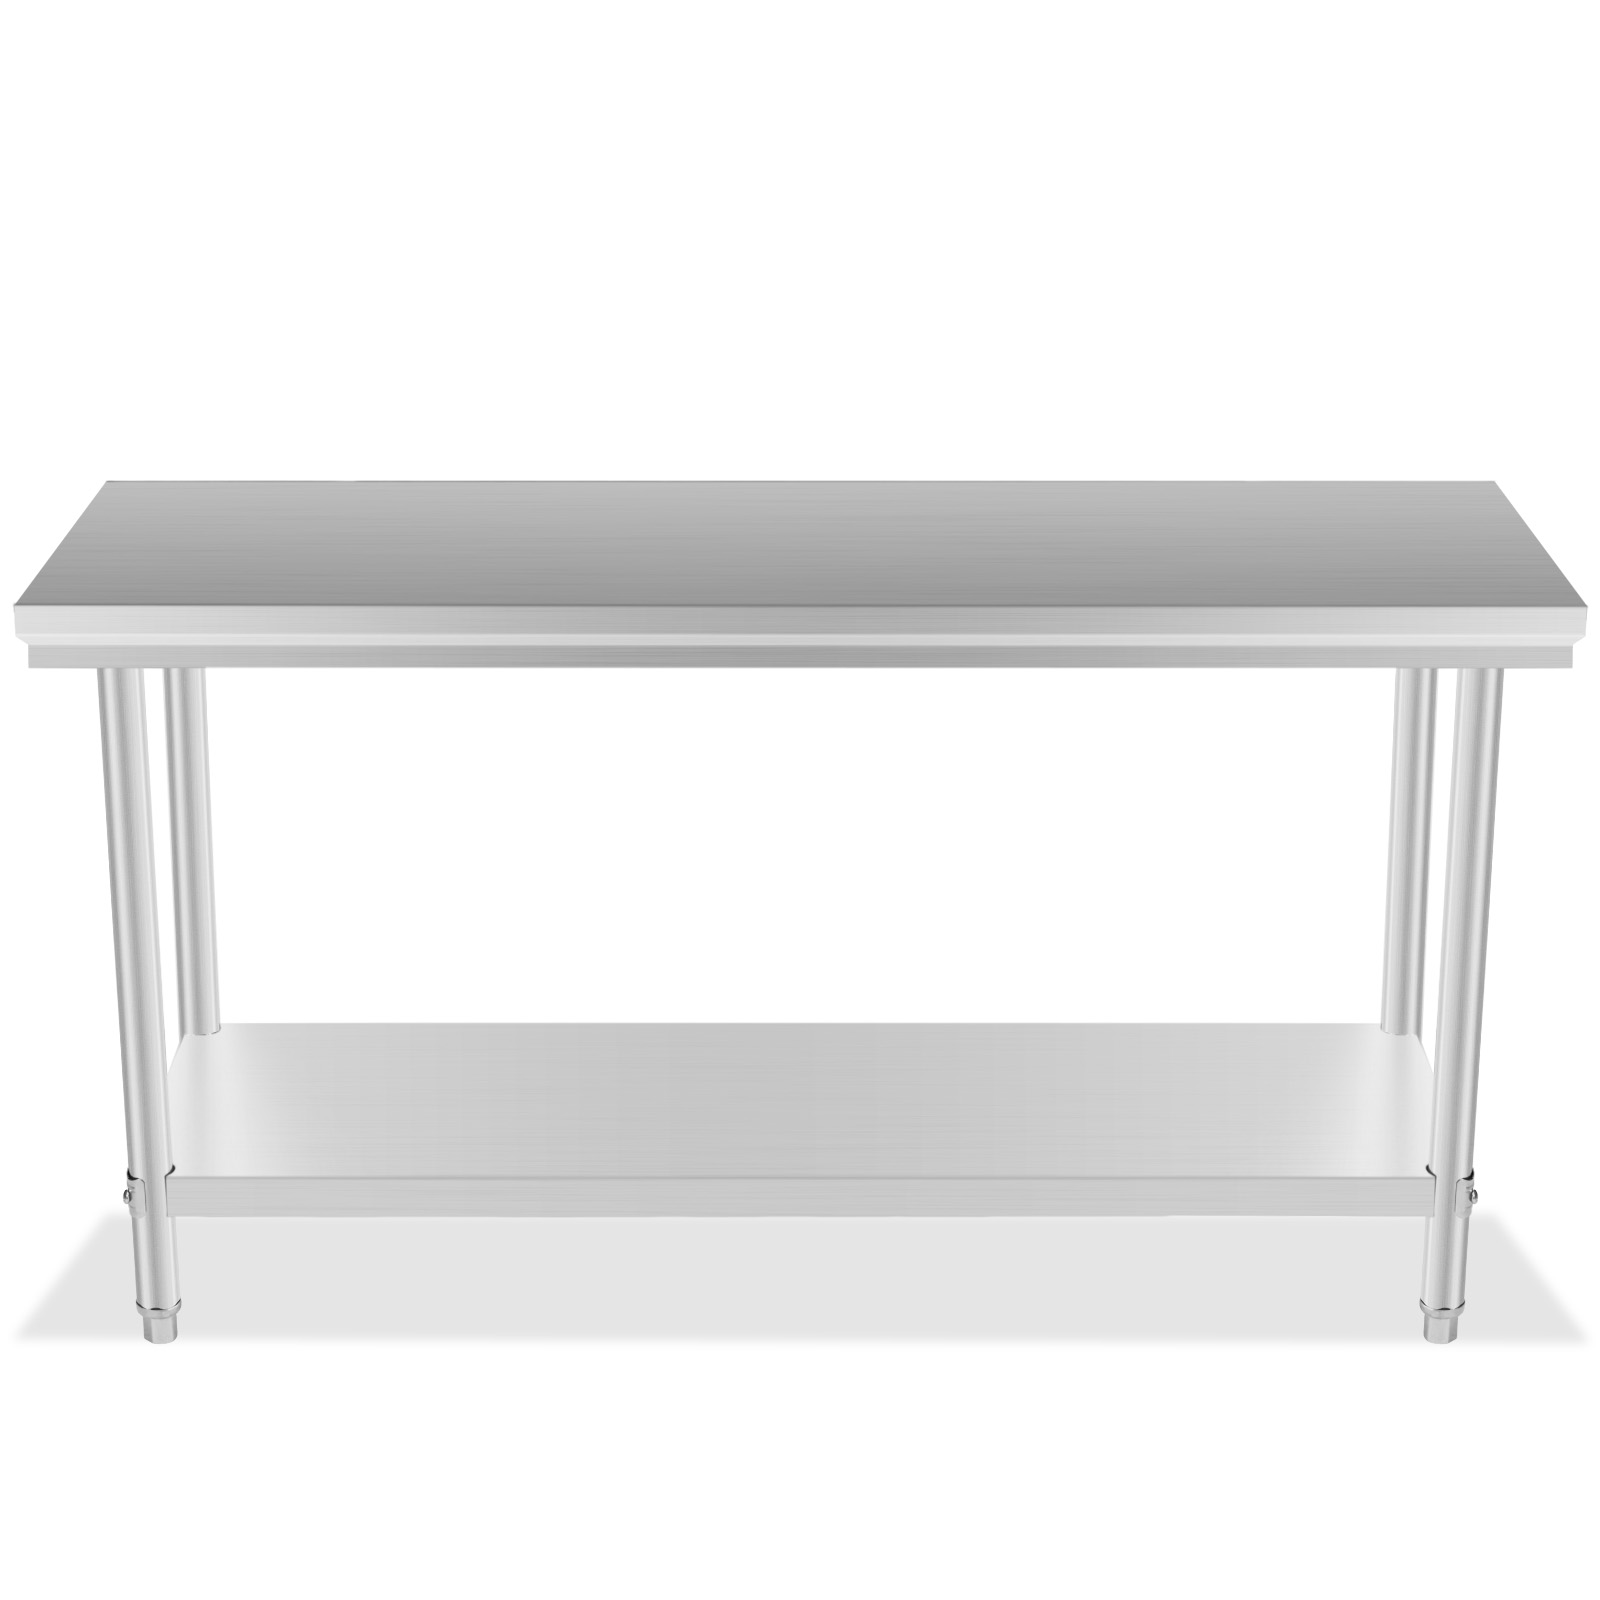 stainless steel kitchen shelf counter desk 24 and x 48 quot work prep table storage